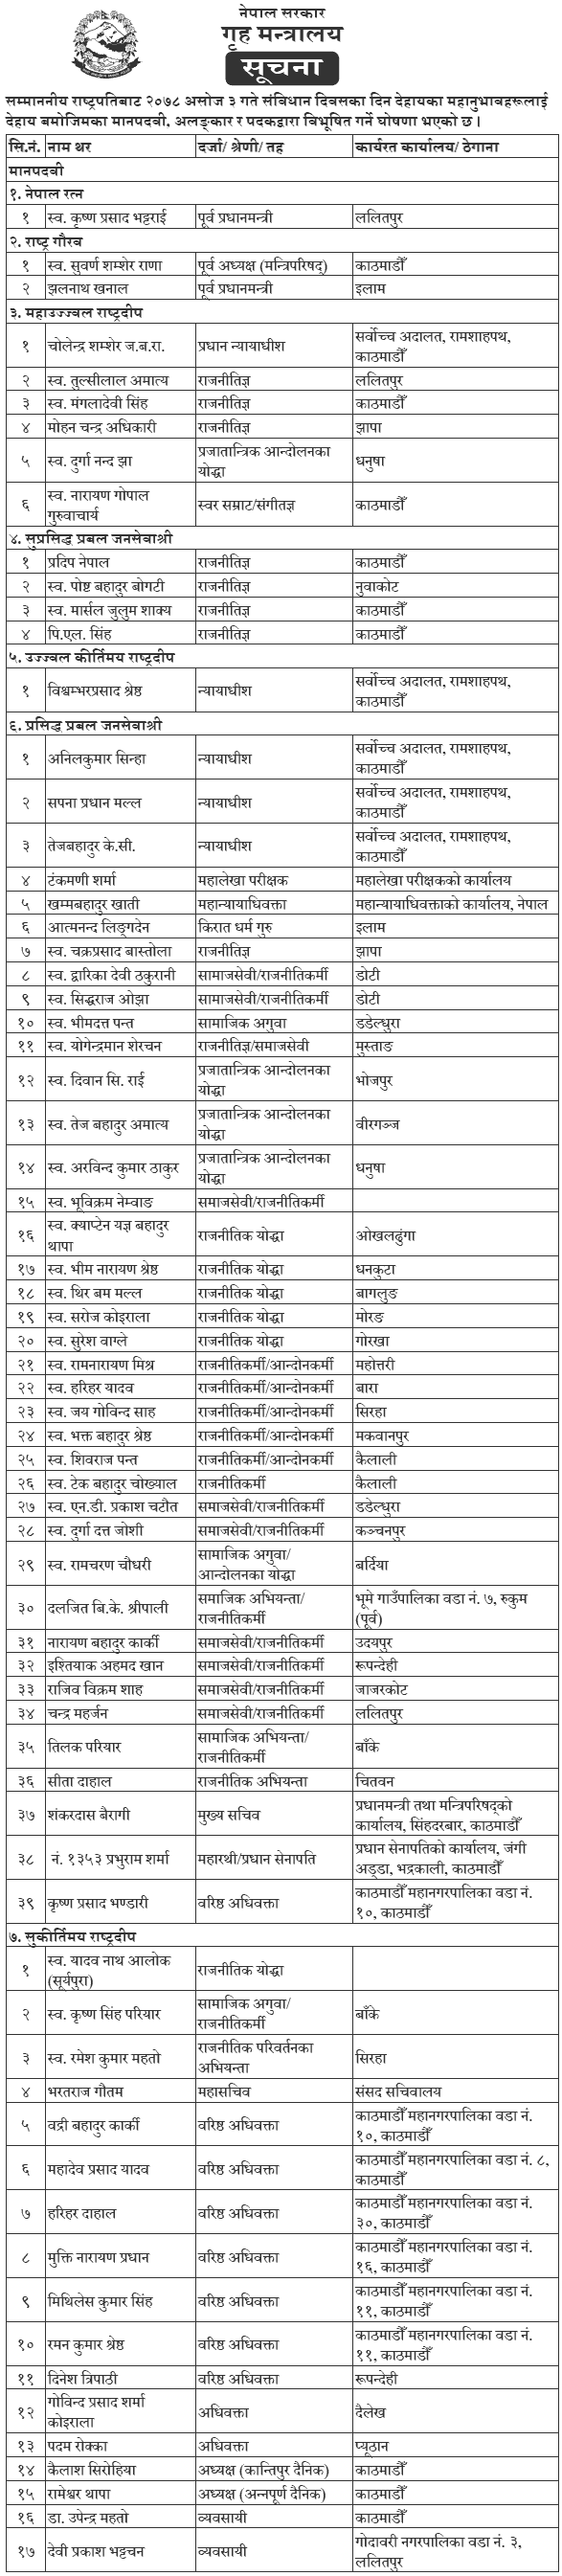 Name List of Awardees on the Occasion of Constitution Day 2078-1